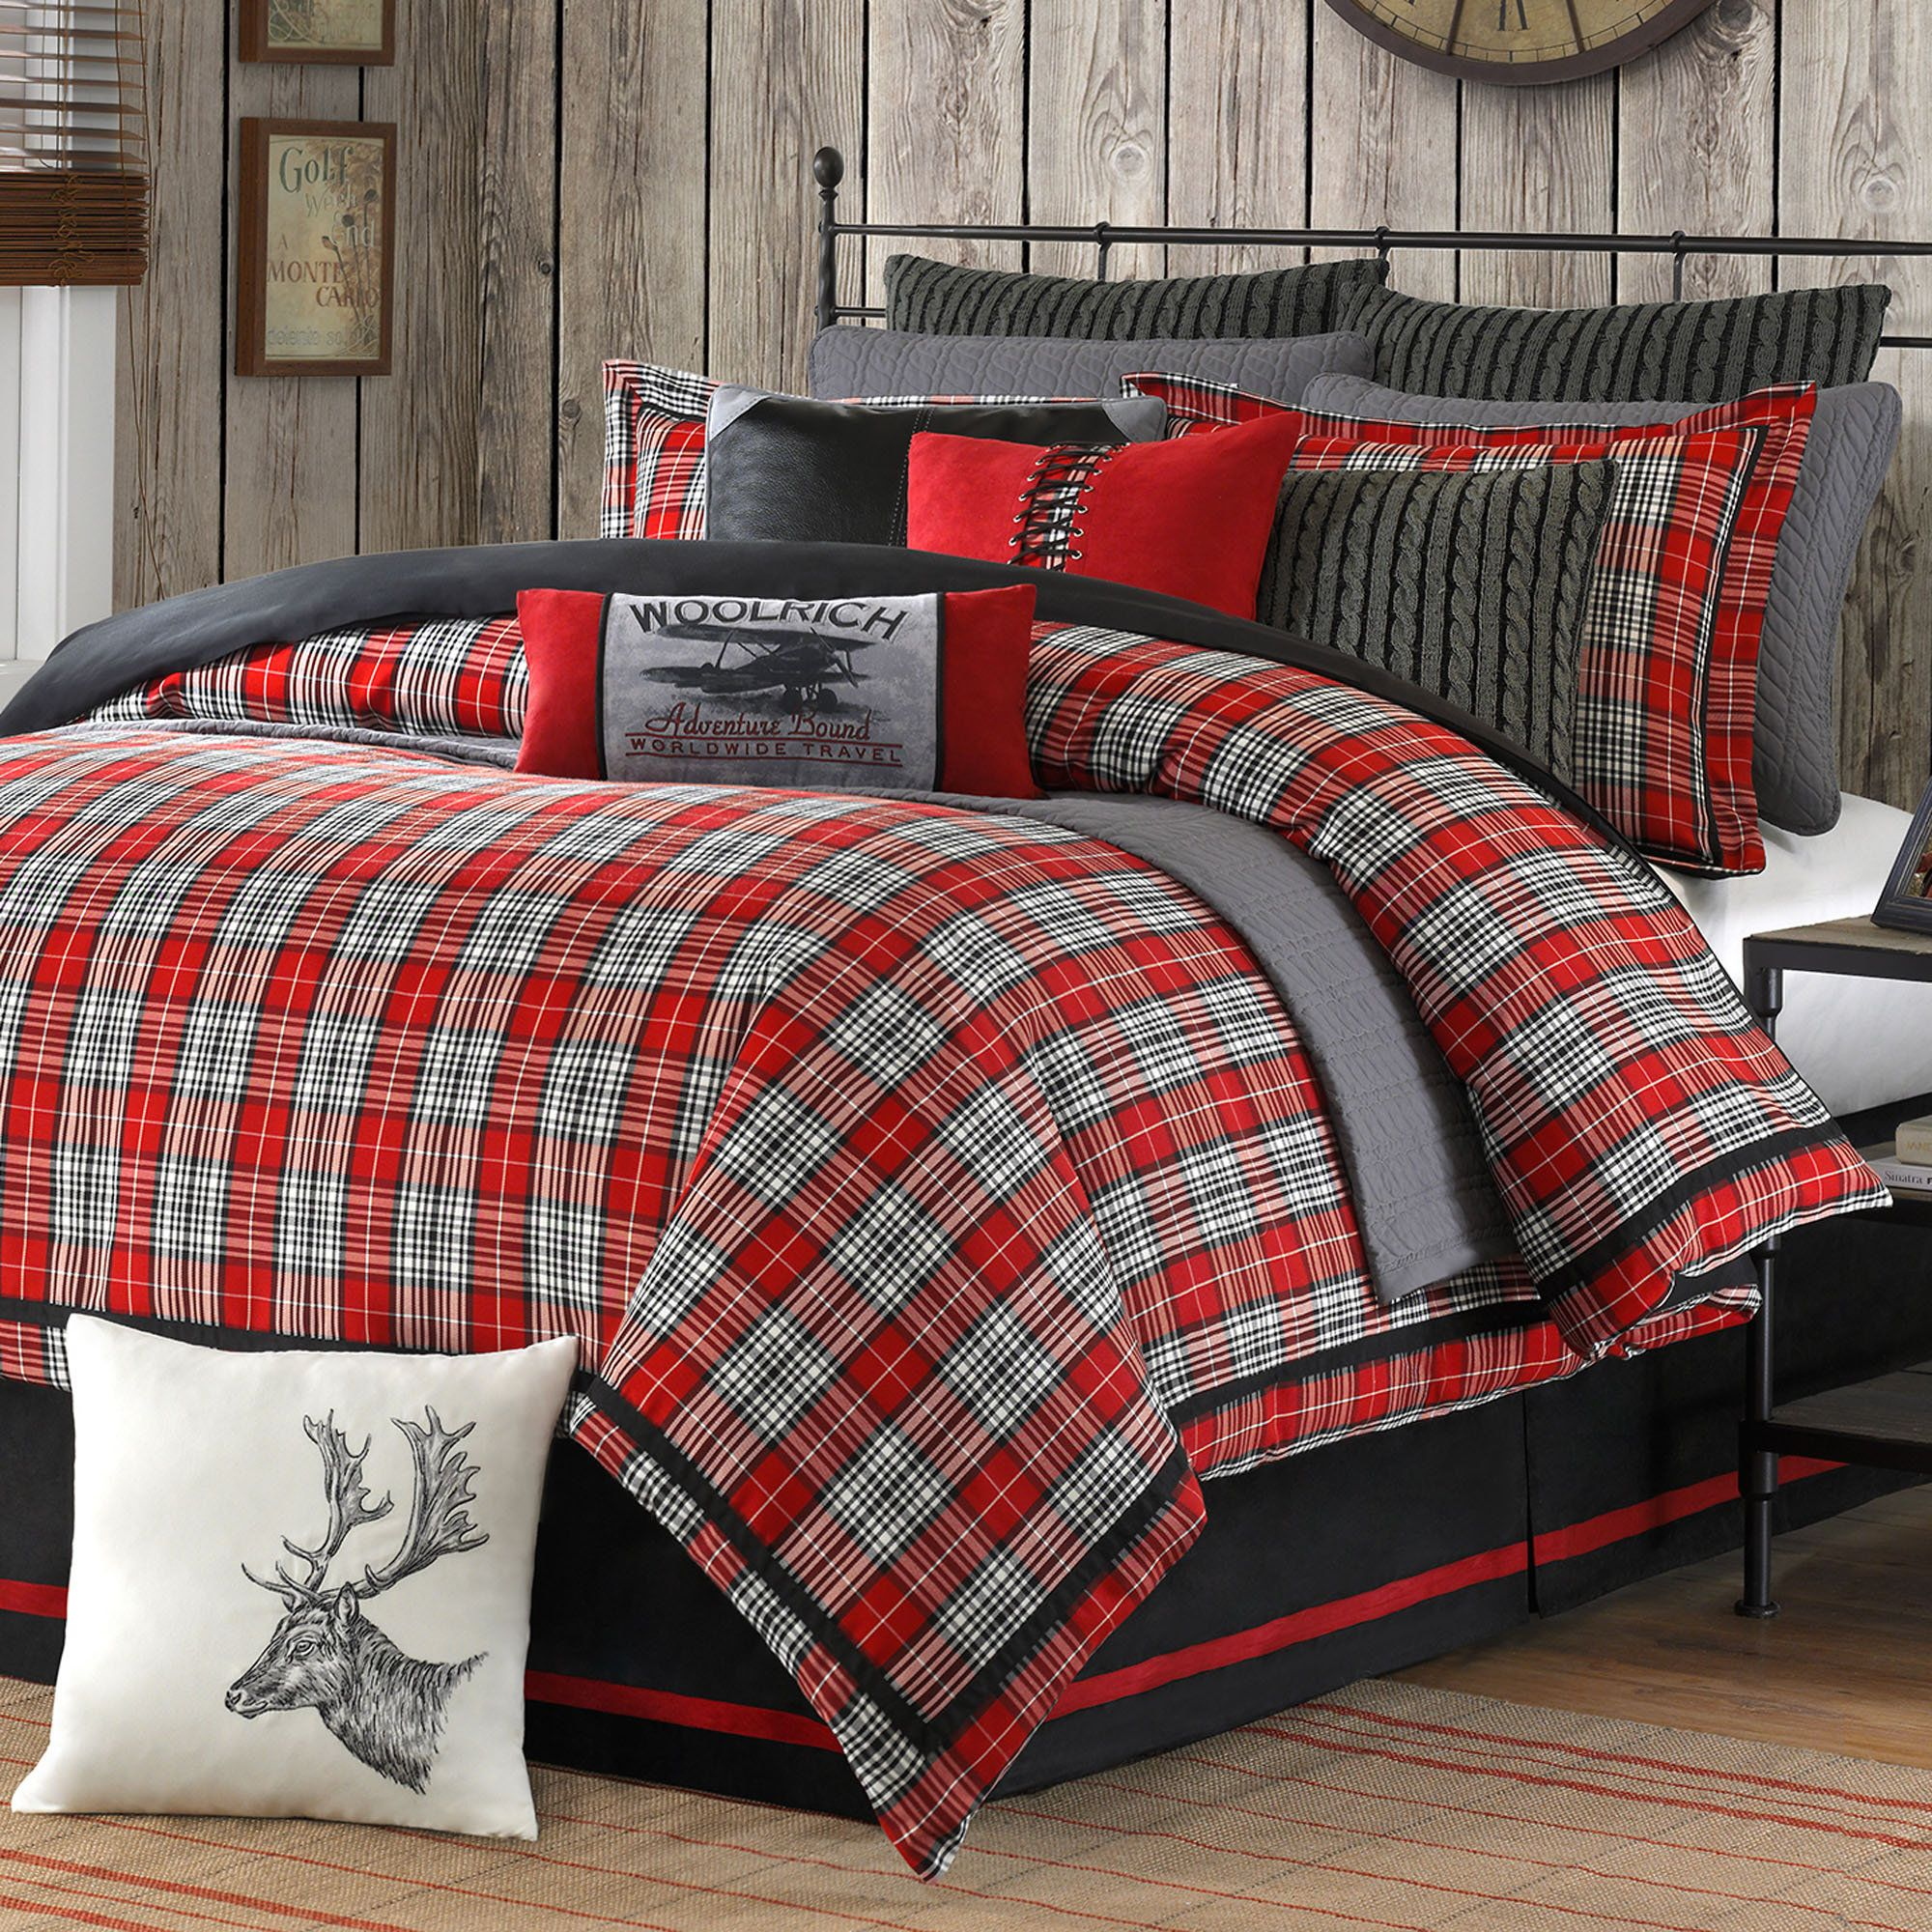 rustic bedroom bedding kikicoleman ideas duvet pin cover plaid red pictures blue